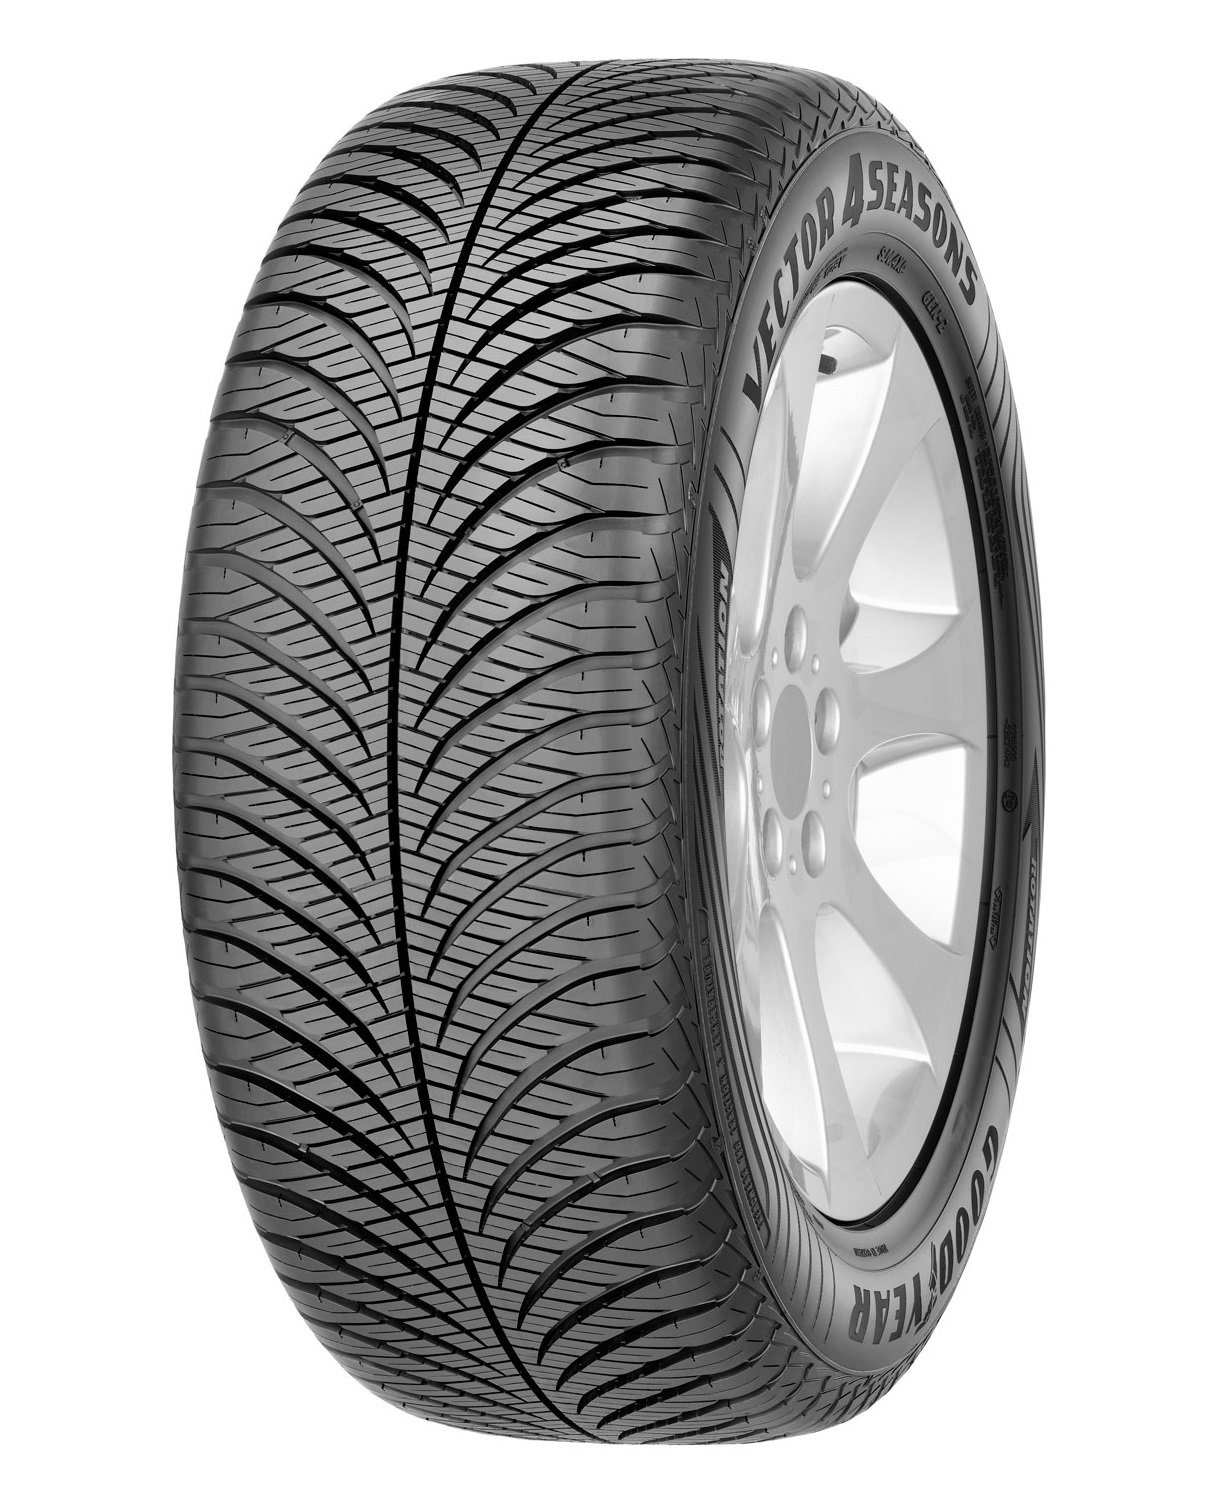 Goodyear Vector 4 seasons 215/60 R17